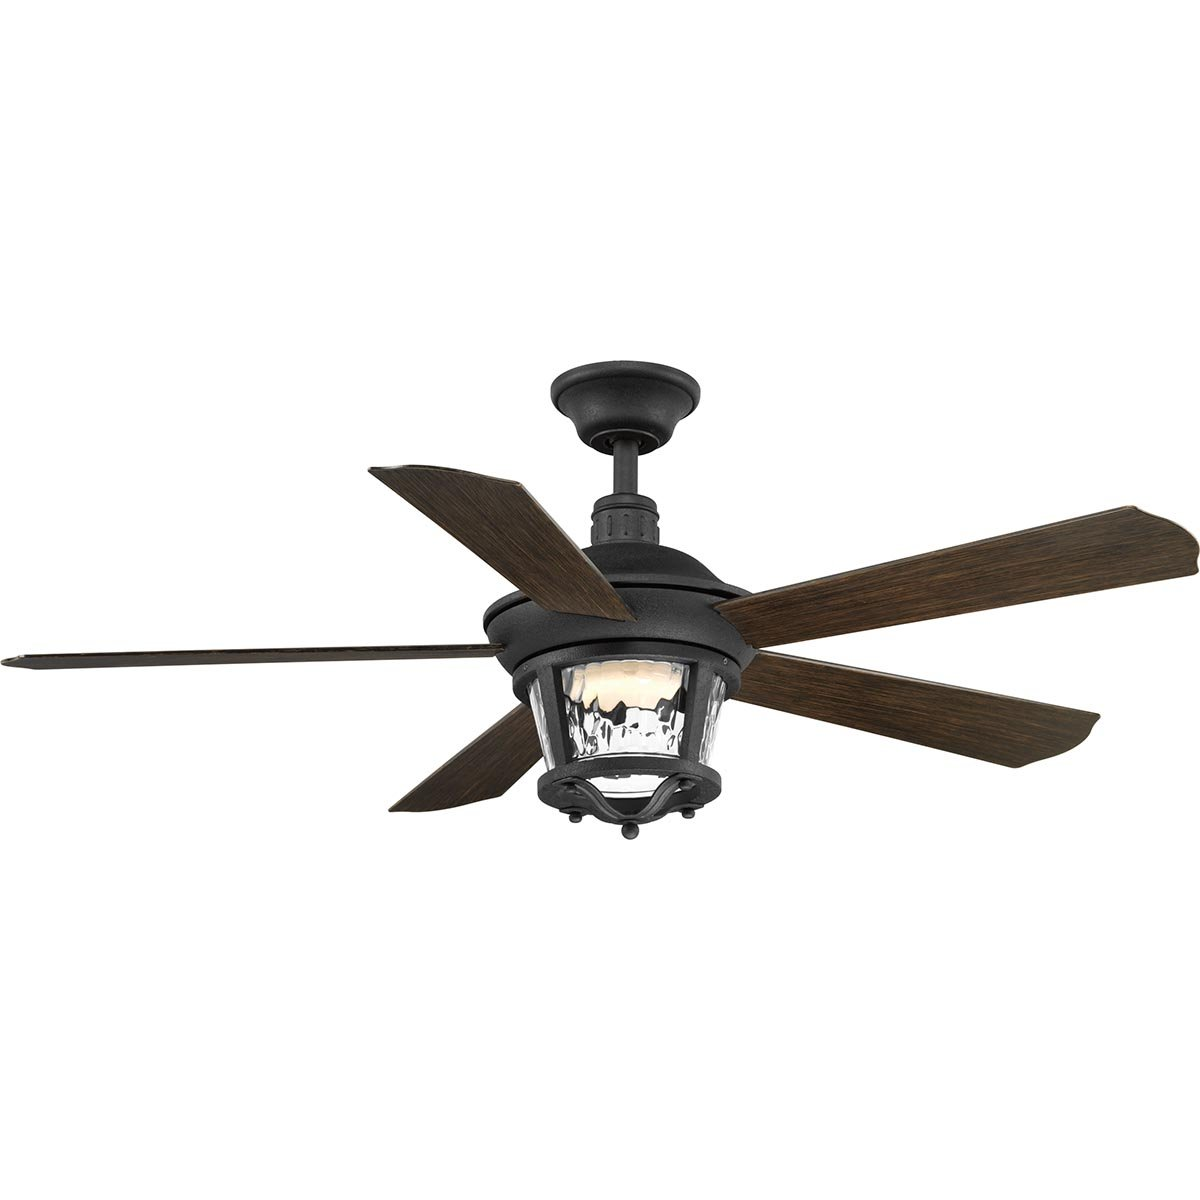 Progress Lighting P2576-8030K Protruding Mount, 5 Toasted Oak Blades Ceiling fan with 18 watts light, Forged Black